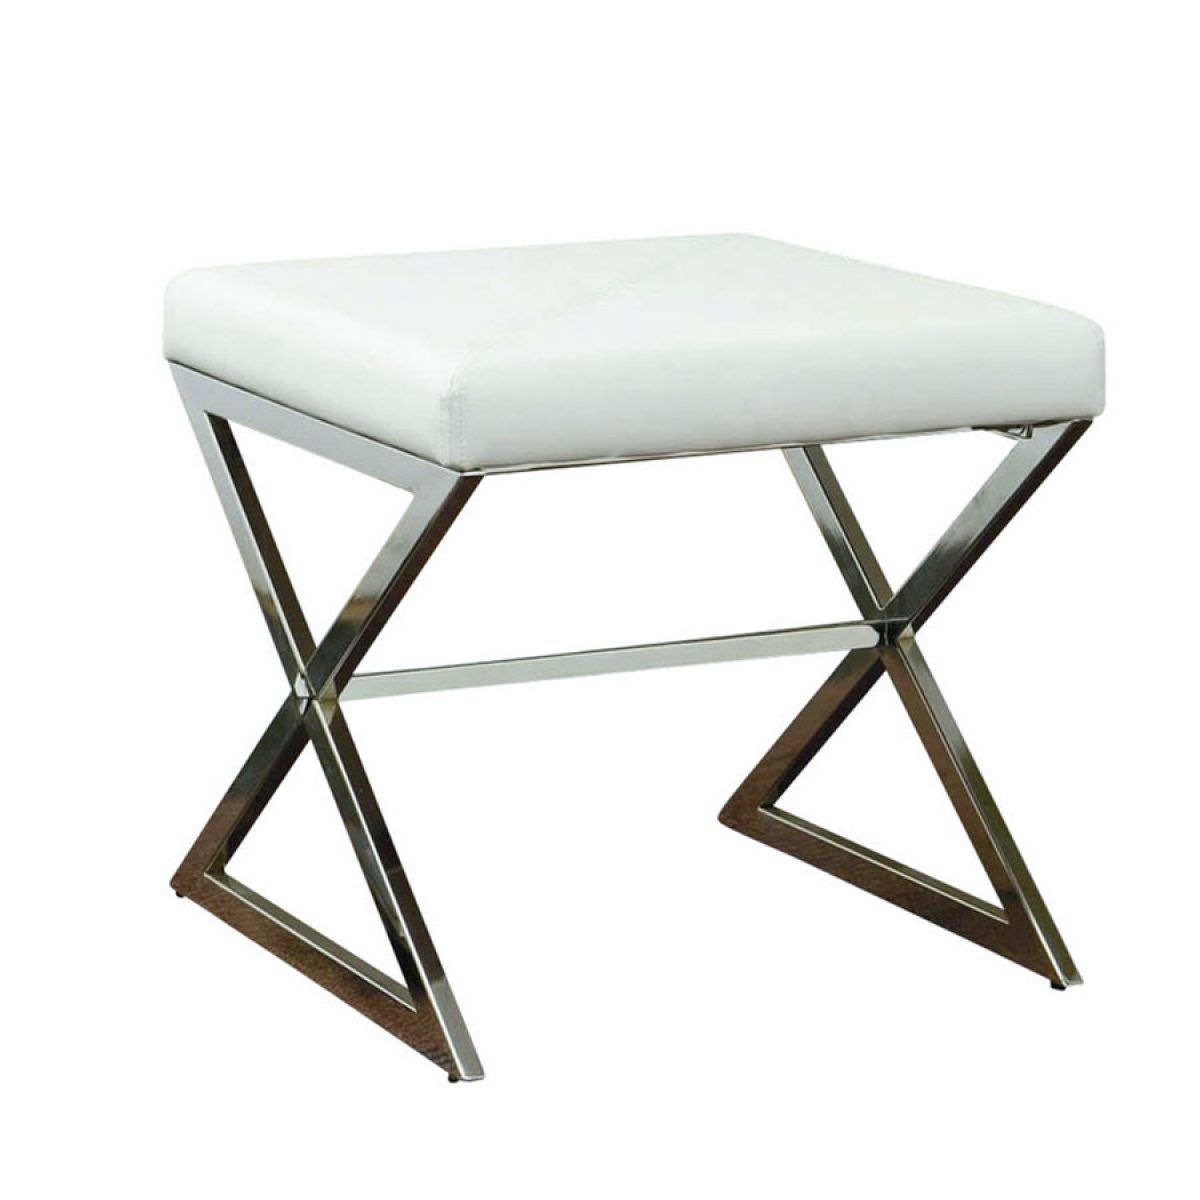 Metal Bedroom Bench Modern White Tufted Vanity Bench With Storage Modern Metals And